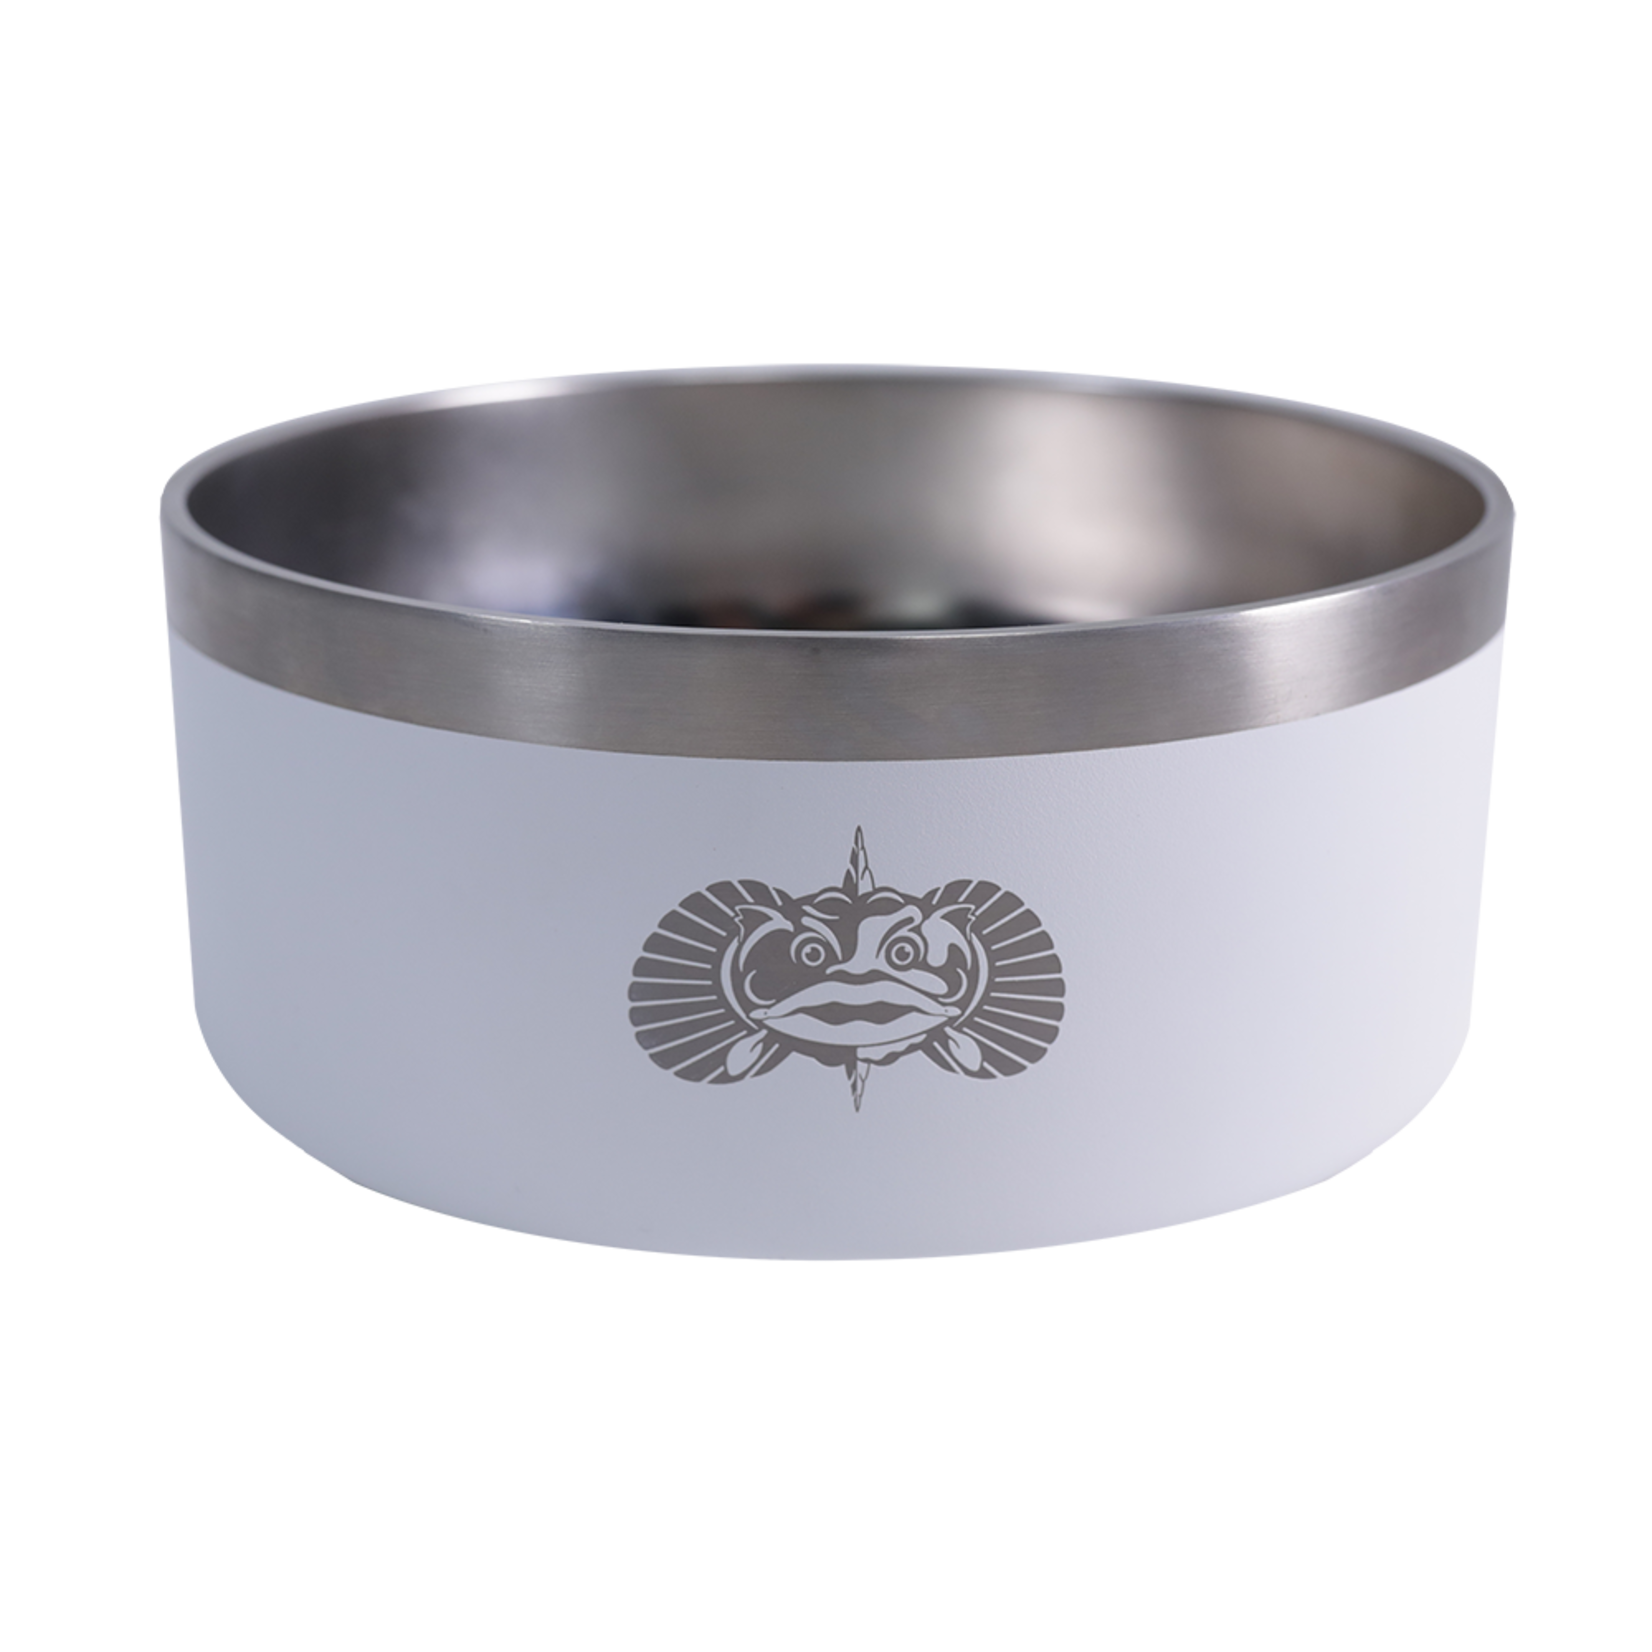 toadfish Toadfish Non-tipping Dog Bowl